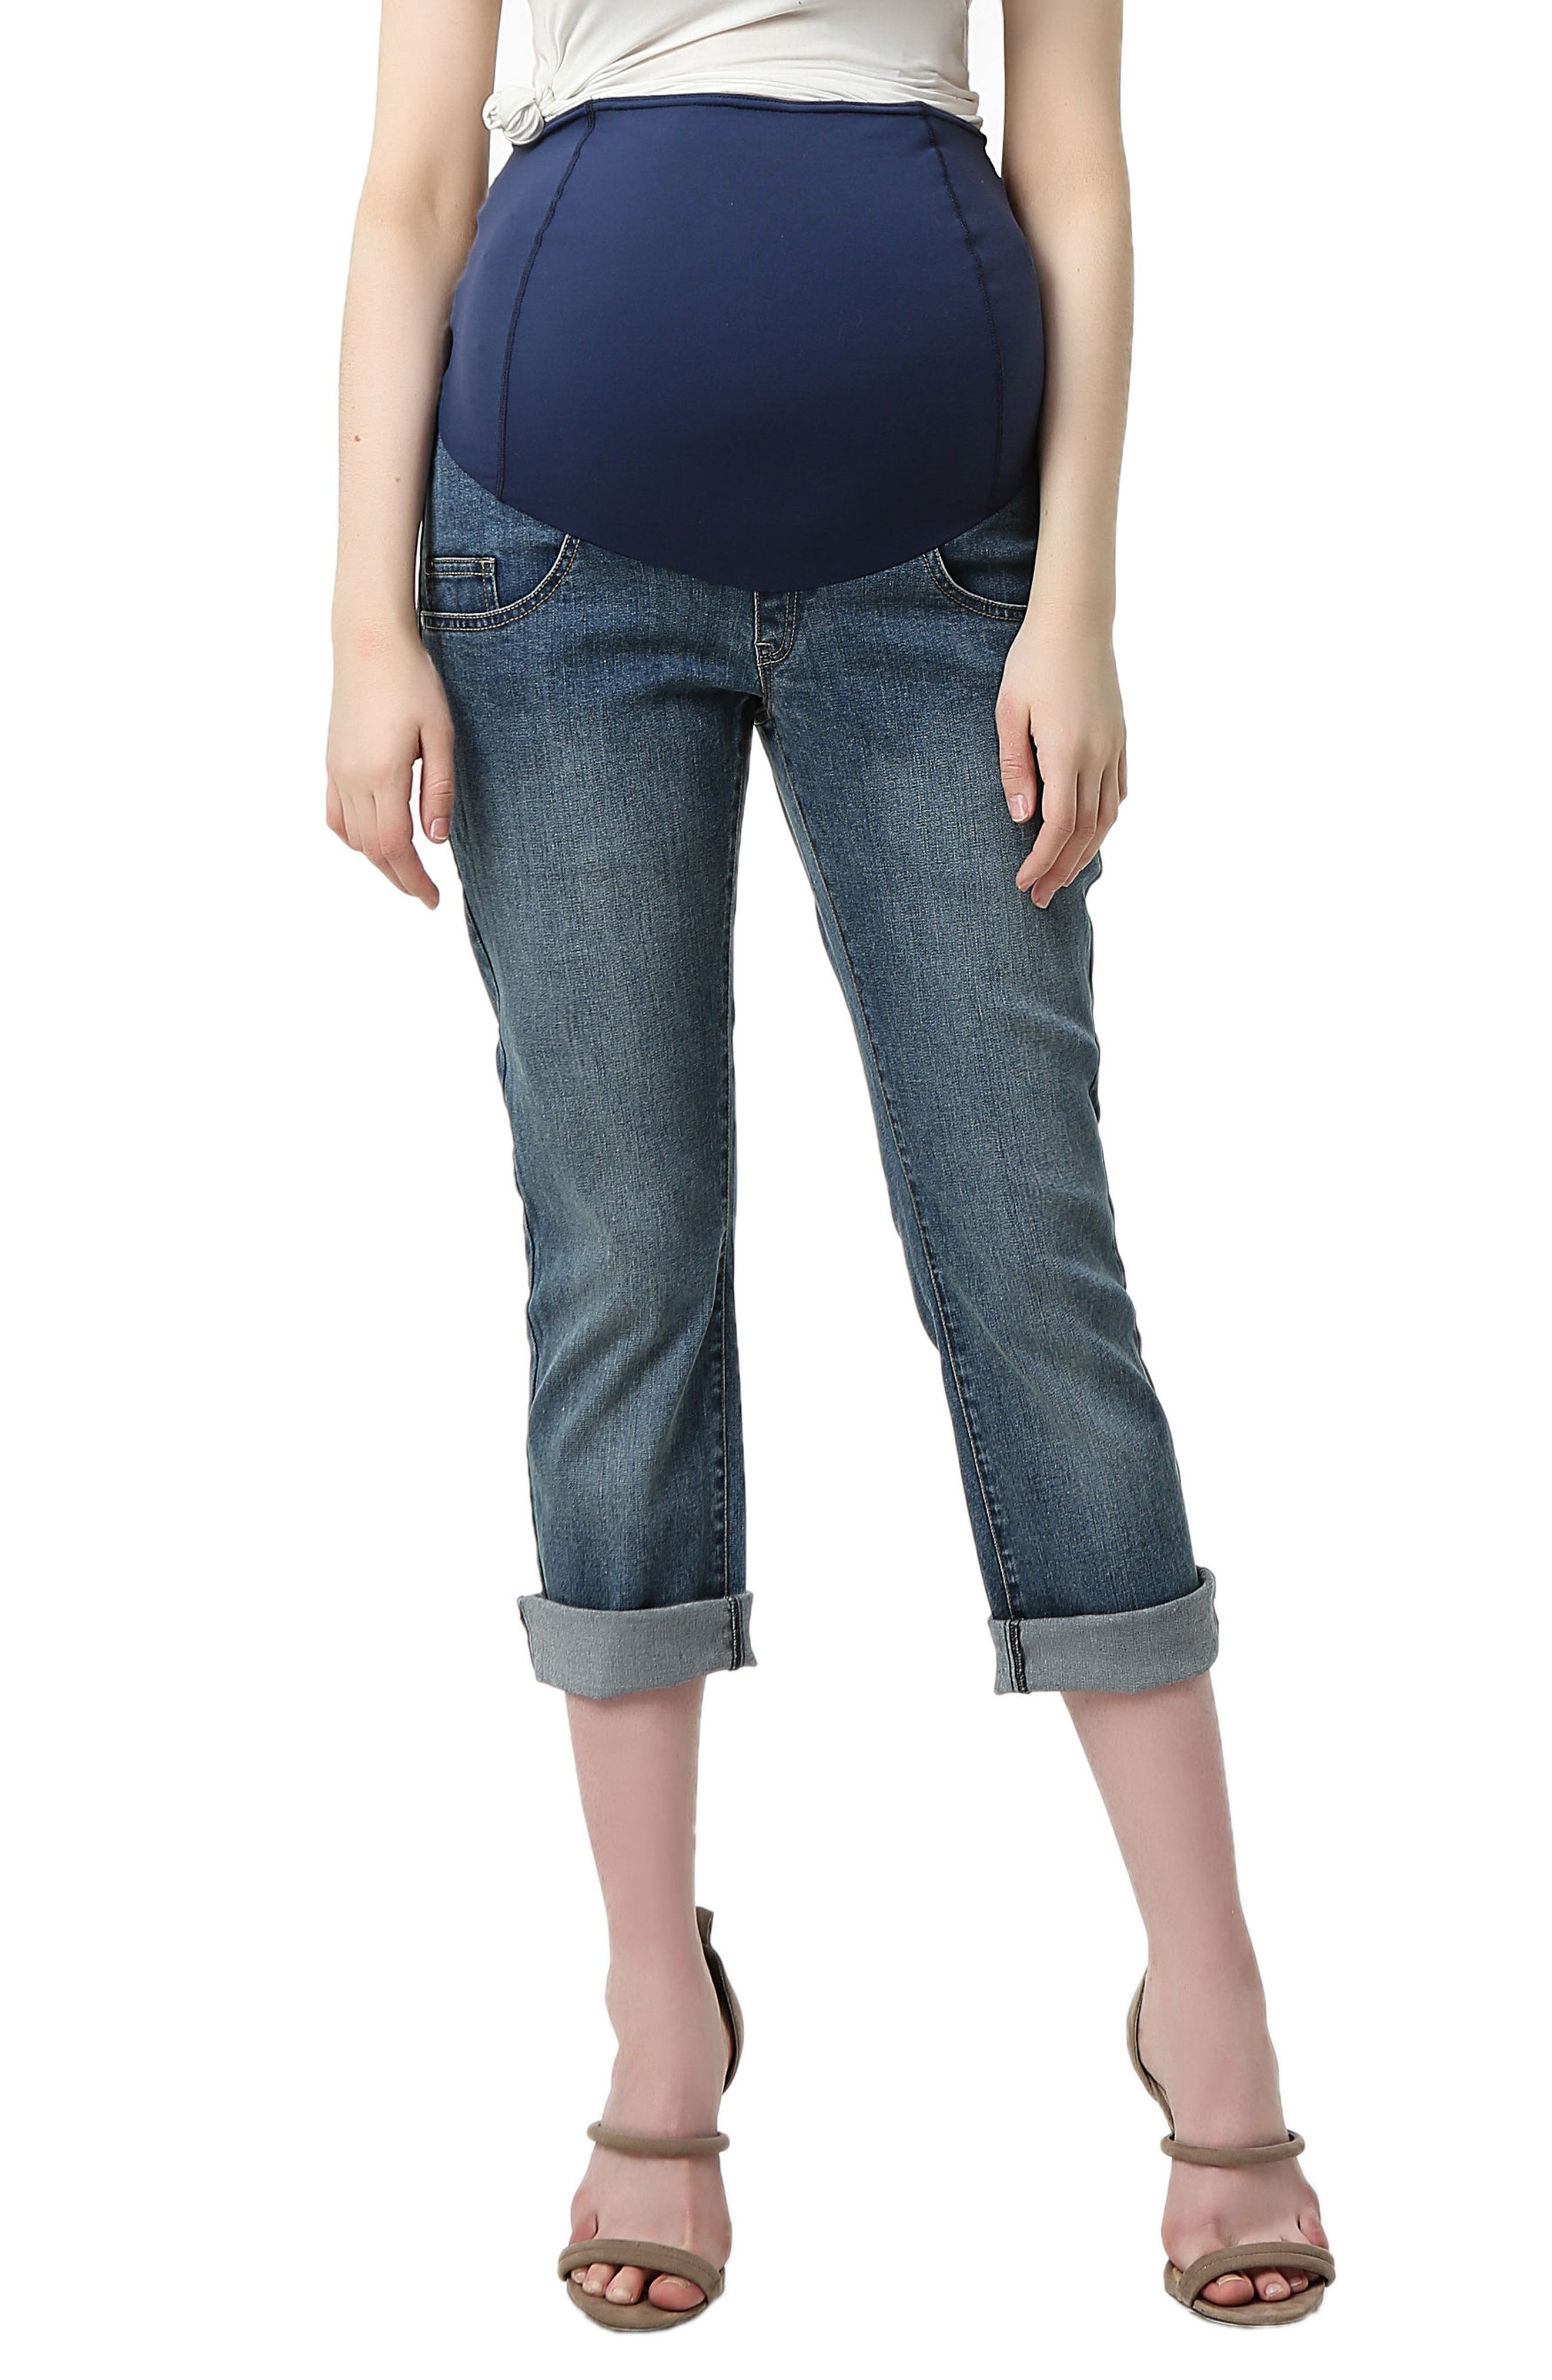 An elastic waistband with contoured panels reaches high on your midriff to securely cradle your baby bump, in girlfriend jeans containing stretch throughout. Style Name: Kimi And Kai Jodie Crop Girlfriend Maternity Jeans. Style Number: 5602981. Available in stores.